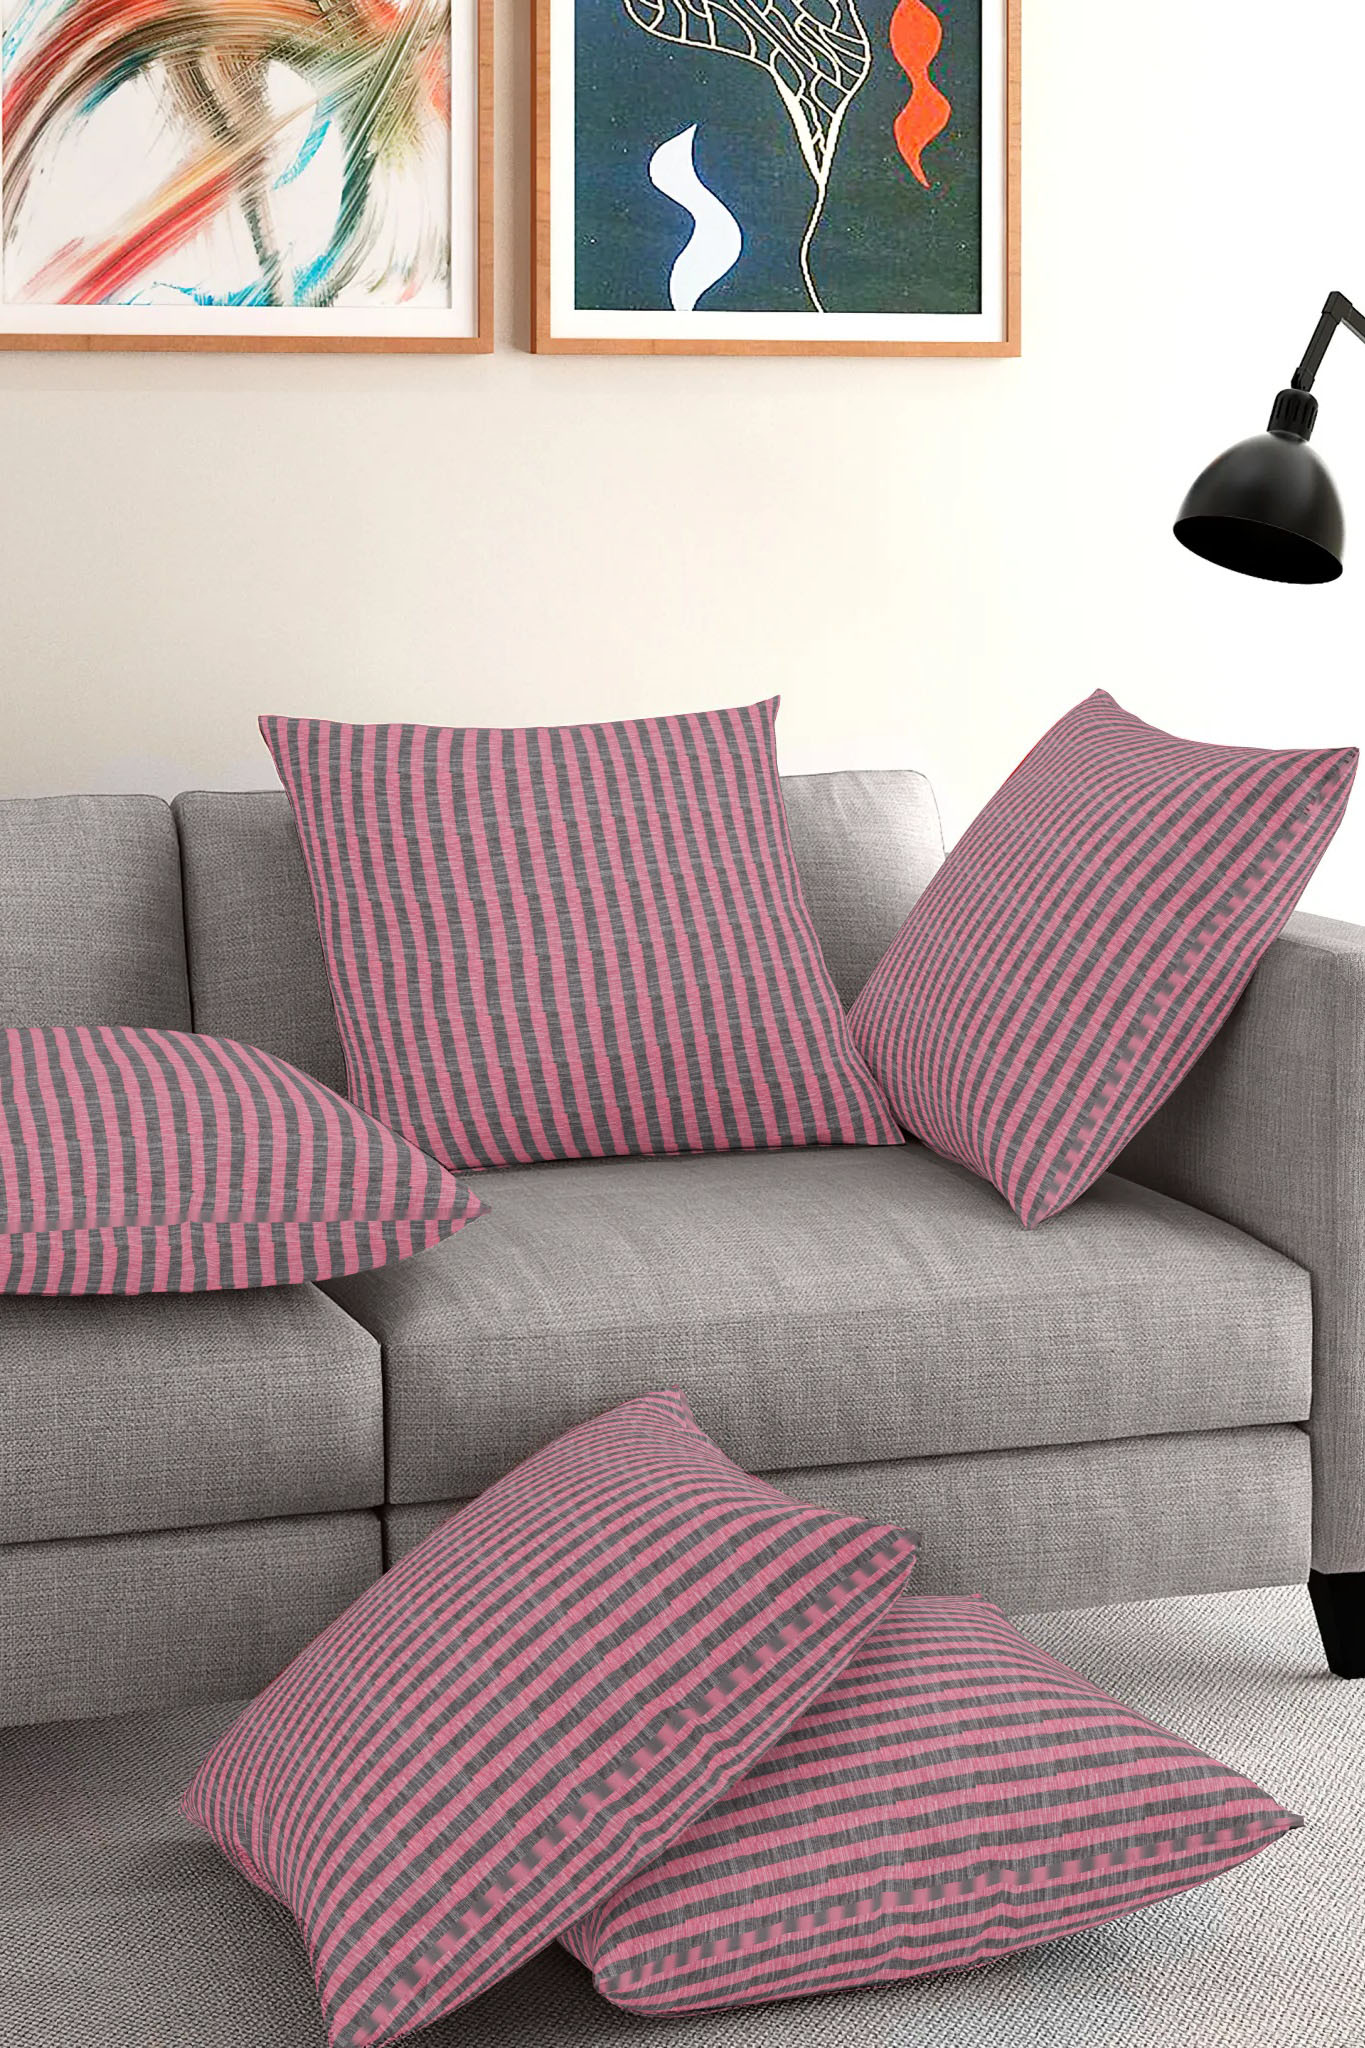 Set of 5-Pink Gray Cotton Cushion Cover-35401-16x16 Inches